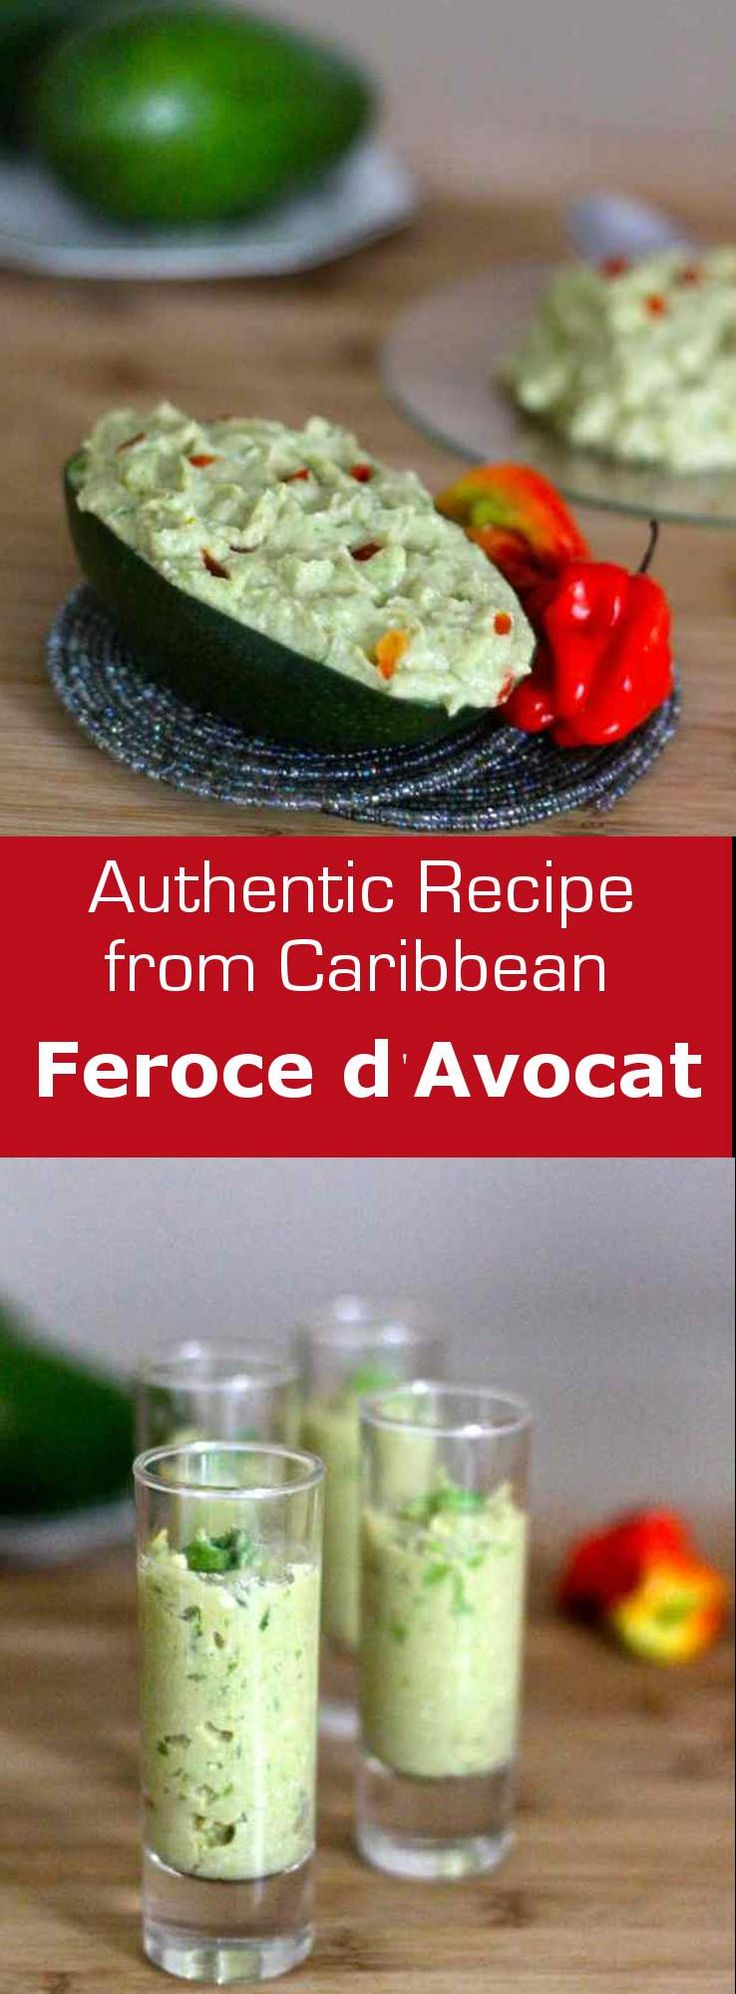 Feroce d'Avocat is a traditional French West Indian specialty made from salt…